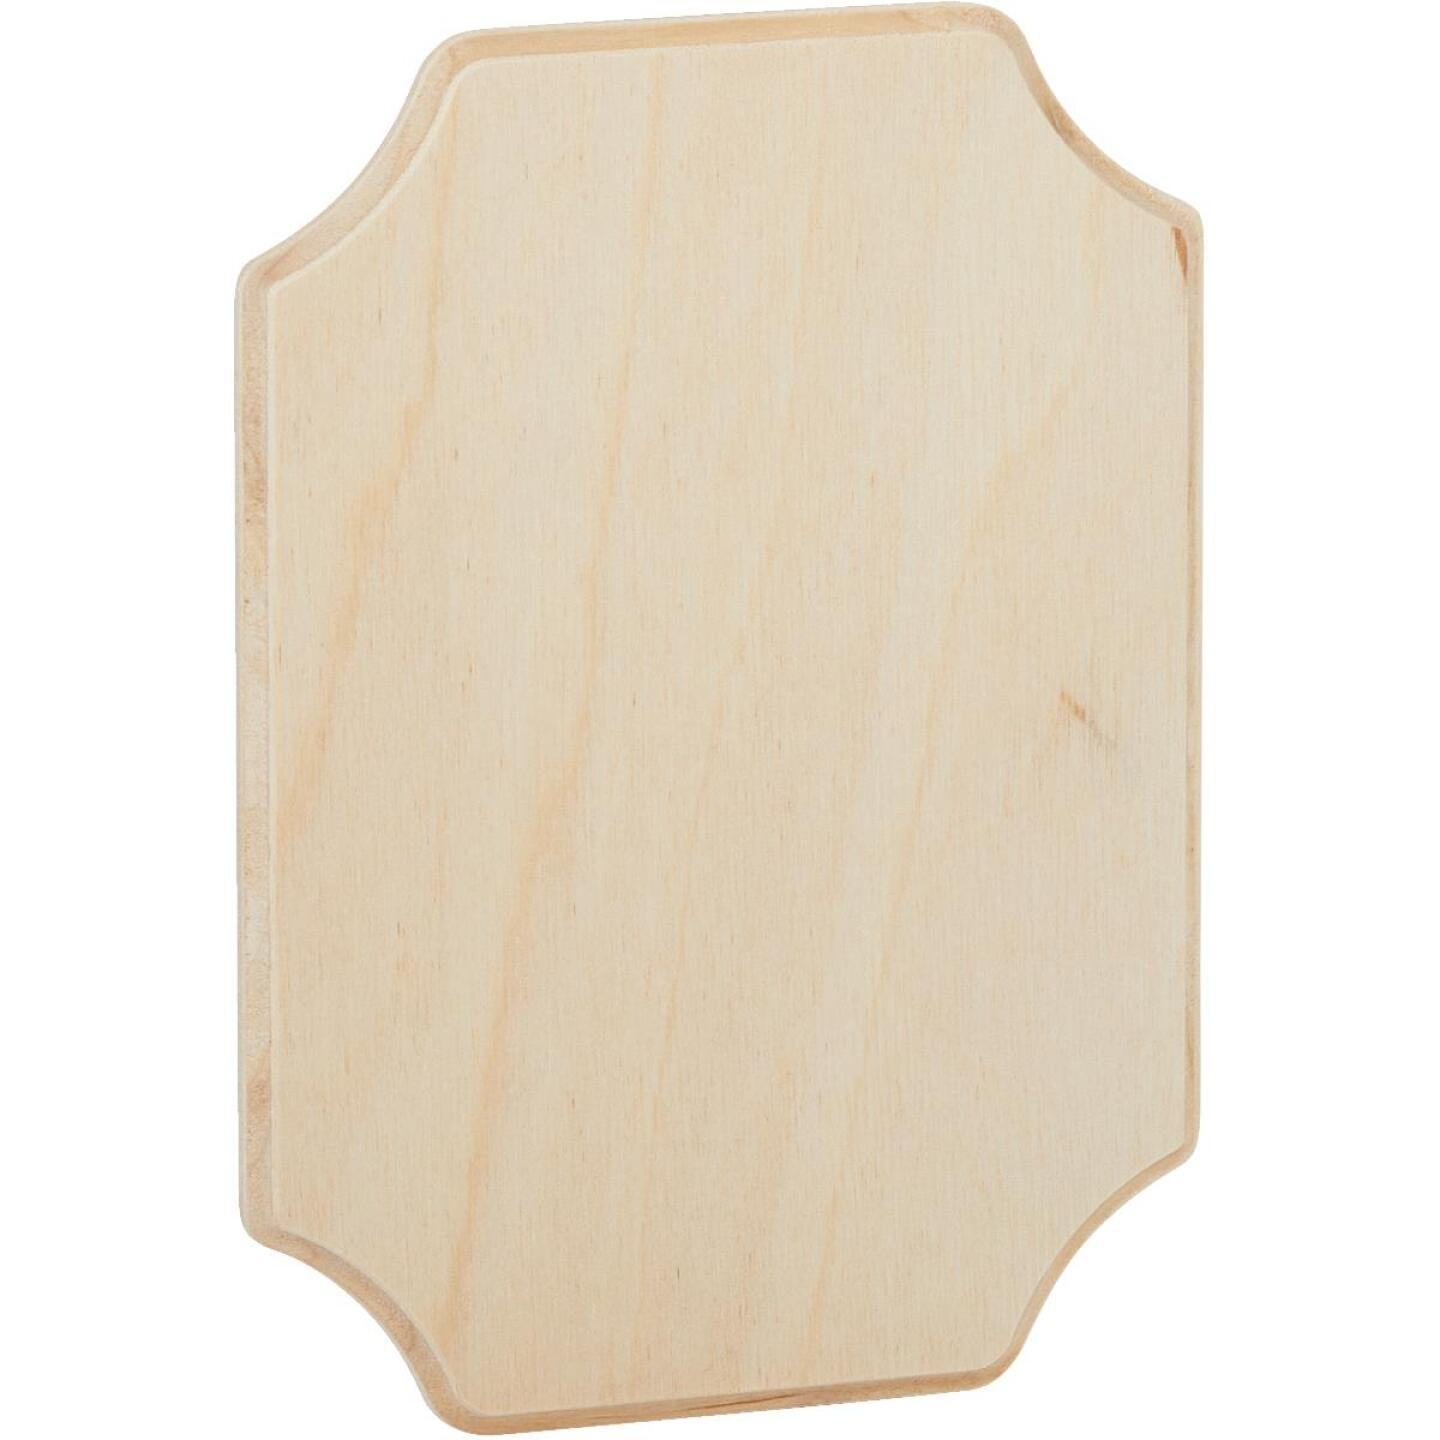 Walnut Hollow 5.25 In. x 7.25 In. French Corner Unfinished Wood Plaque Image 1